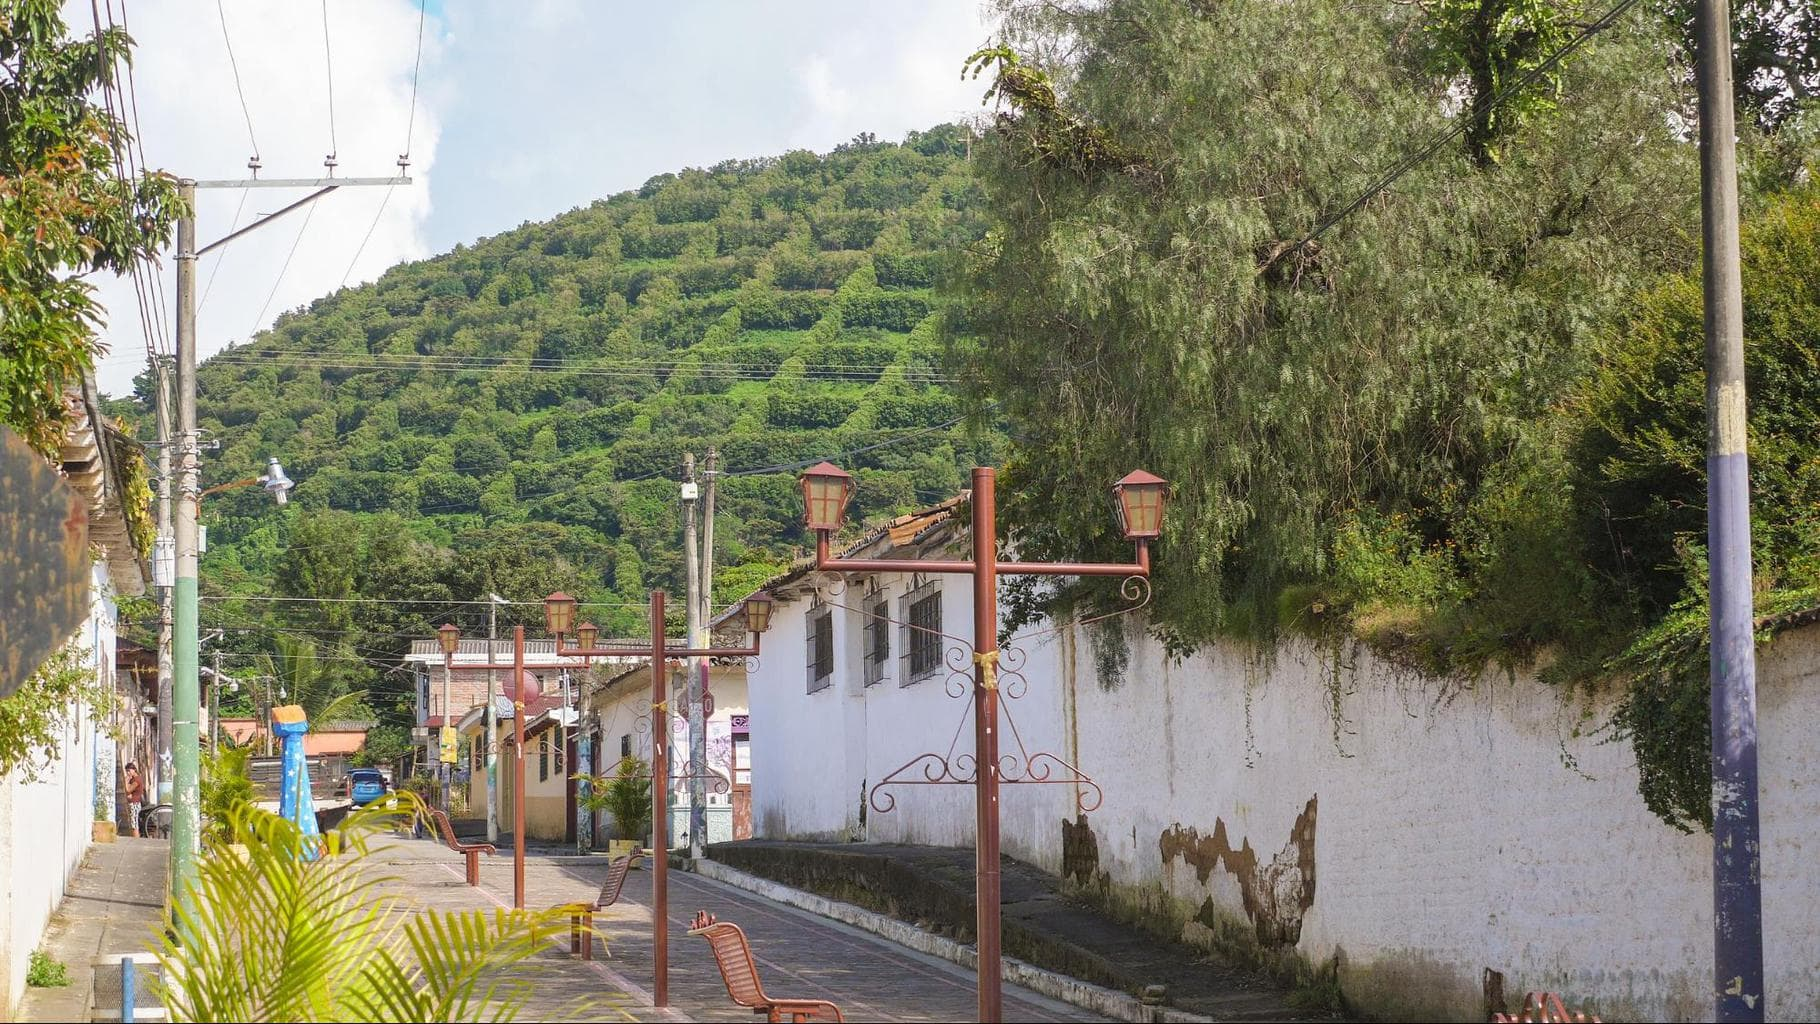 Checkered shaped coffee bushes in Apeneca